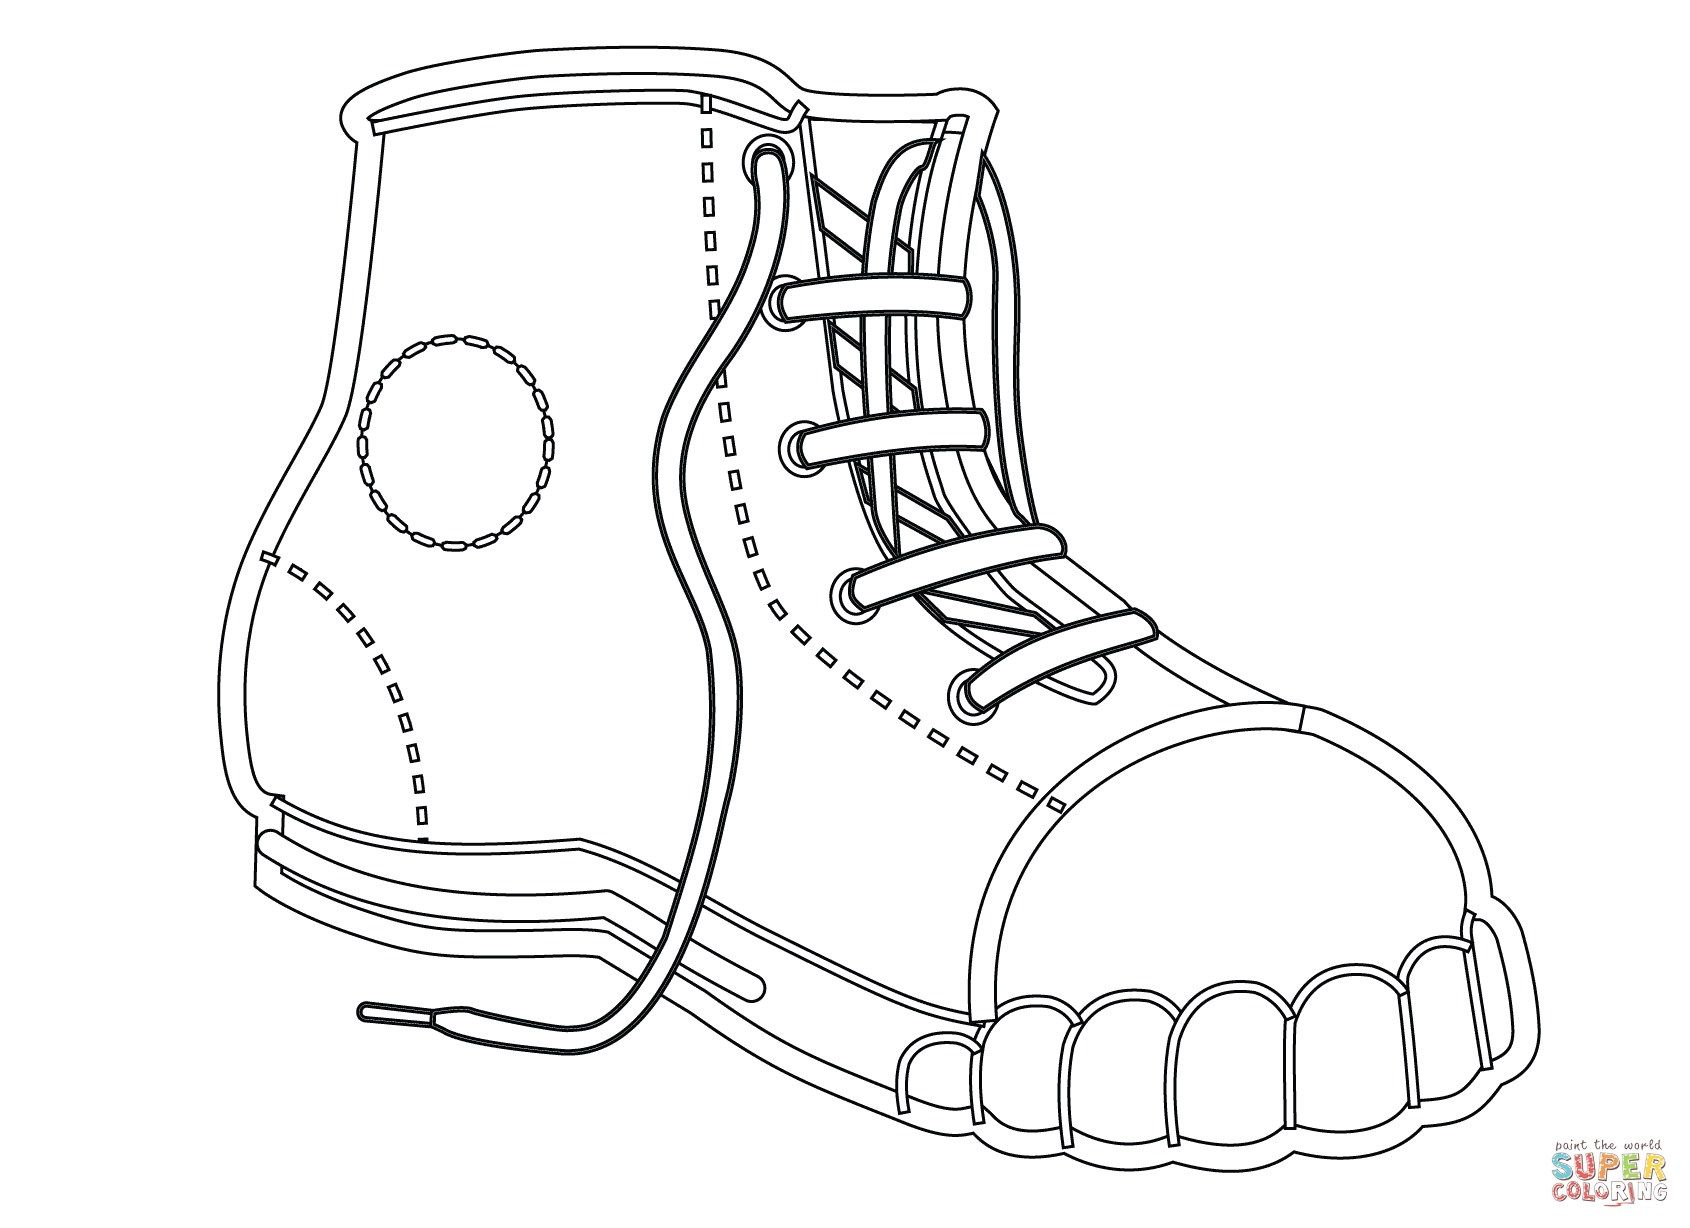 22 Great Photo Of Shoe Coloring Page Davemelillo Com Coloring Books Jordan Coloring Book Coloring Pages